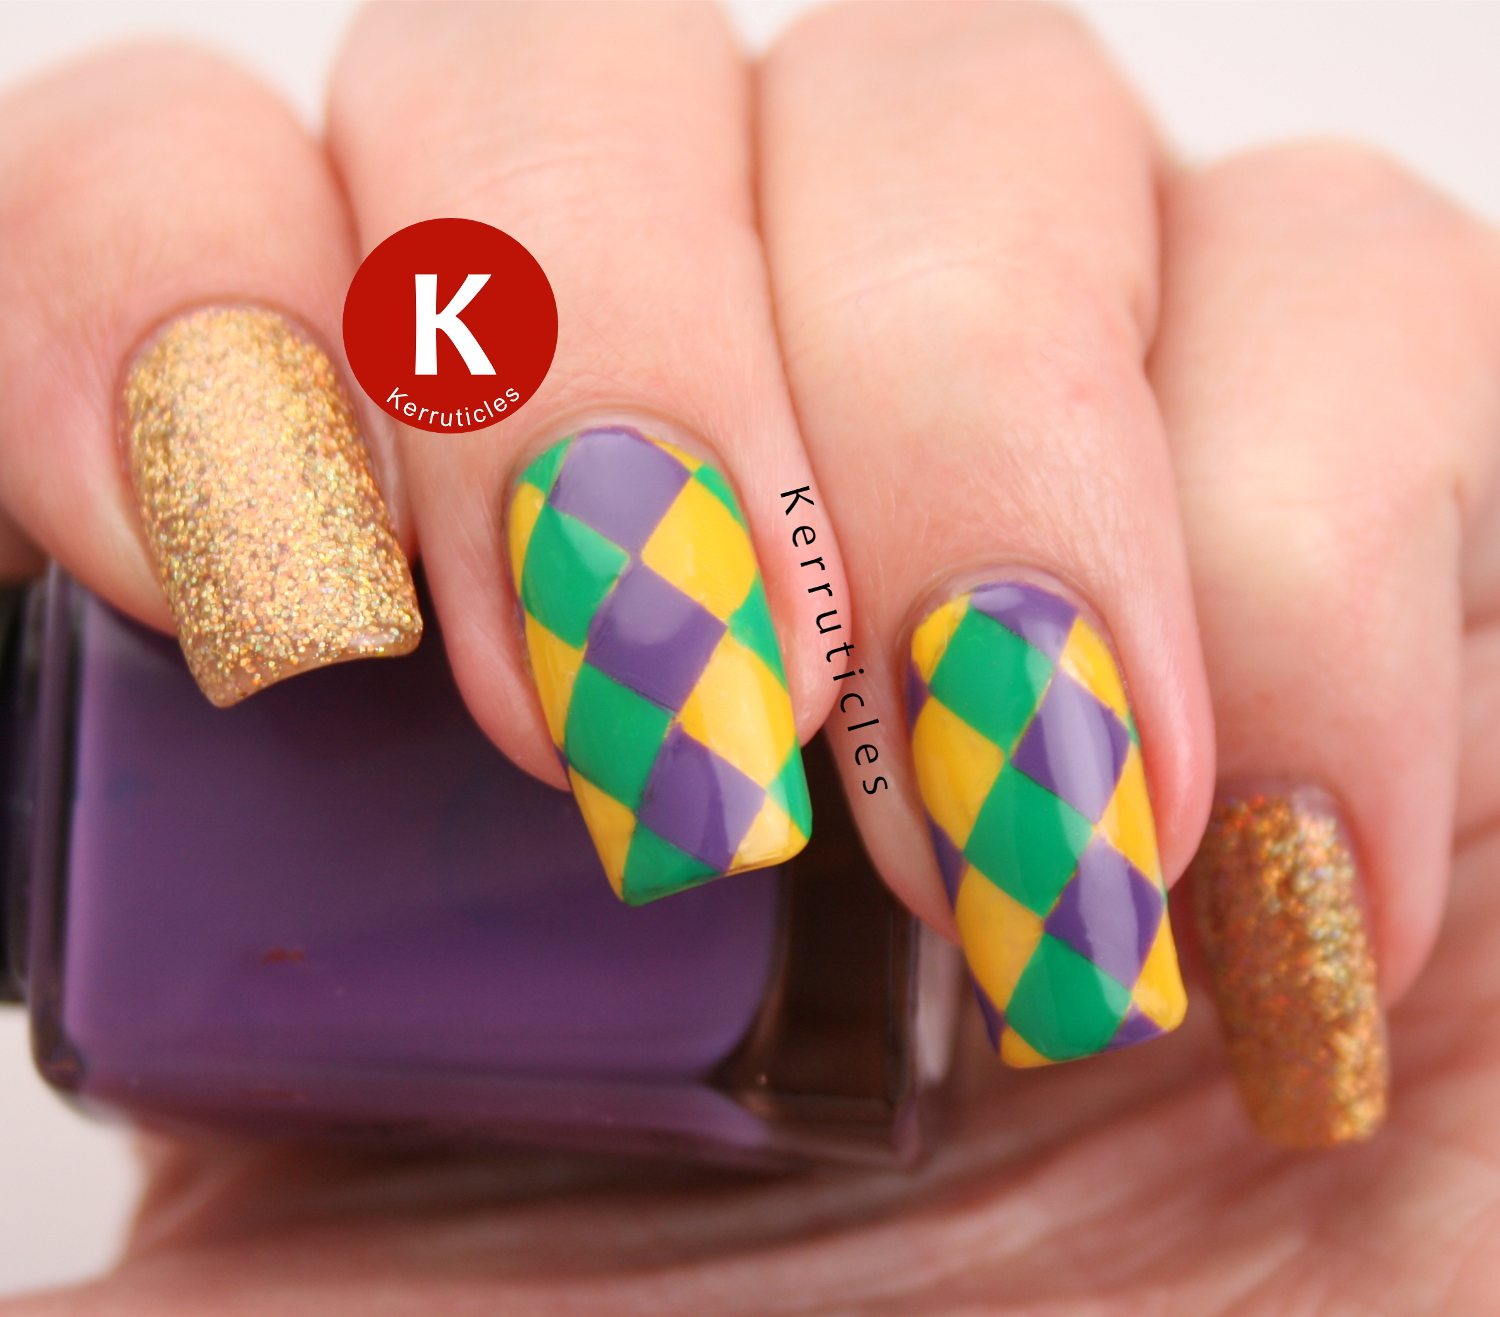 Mardi Gras nails | Kerruticles